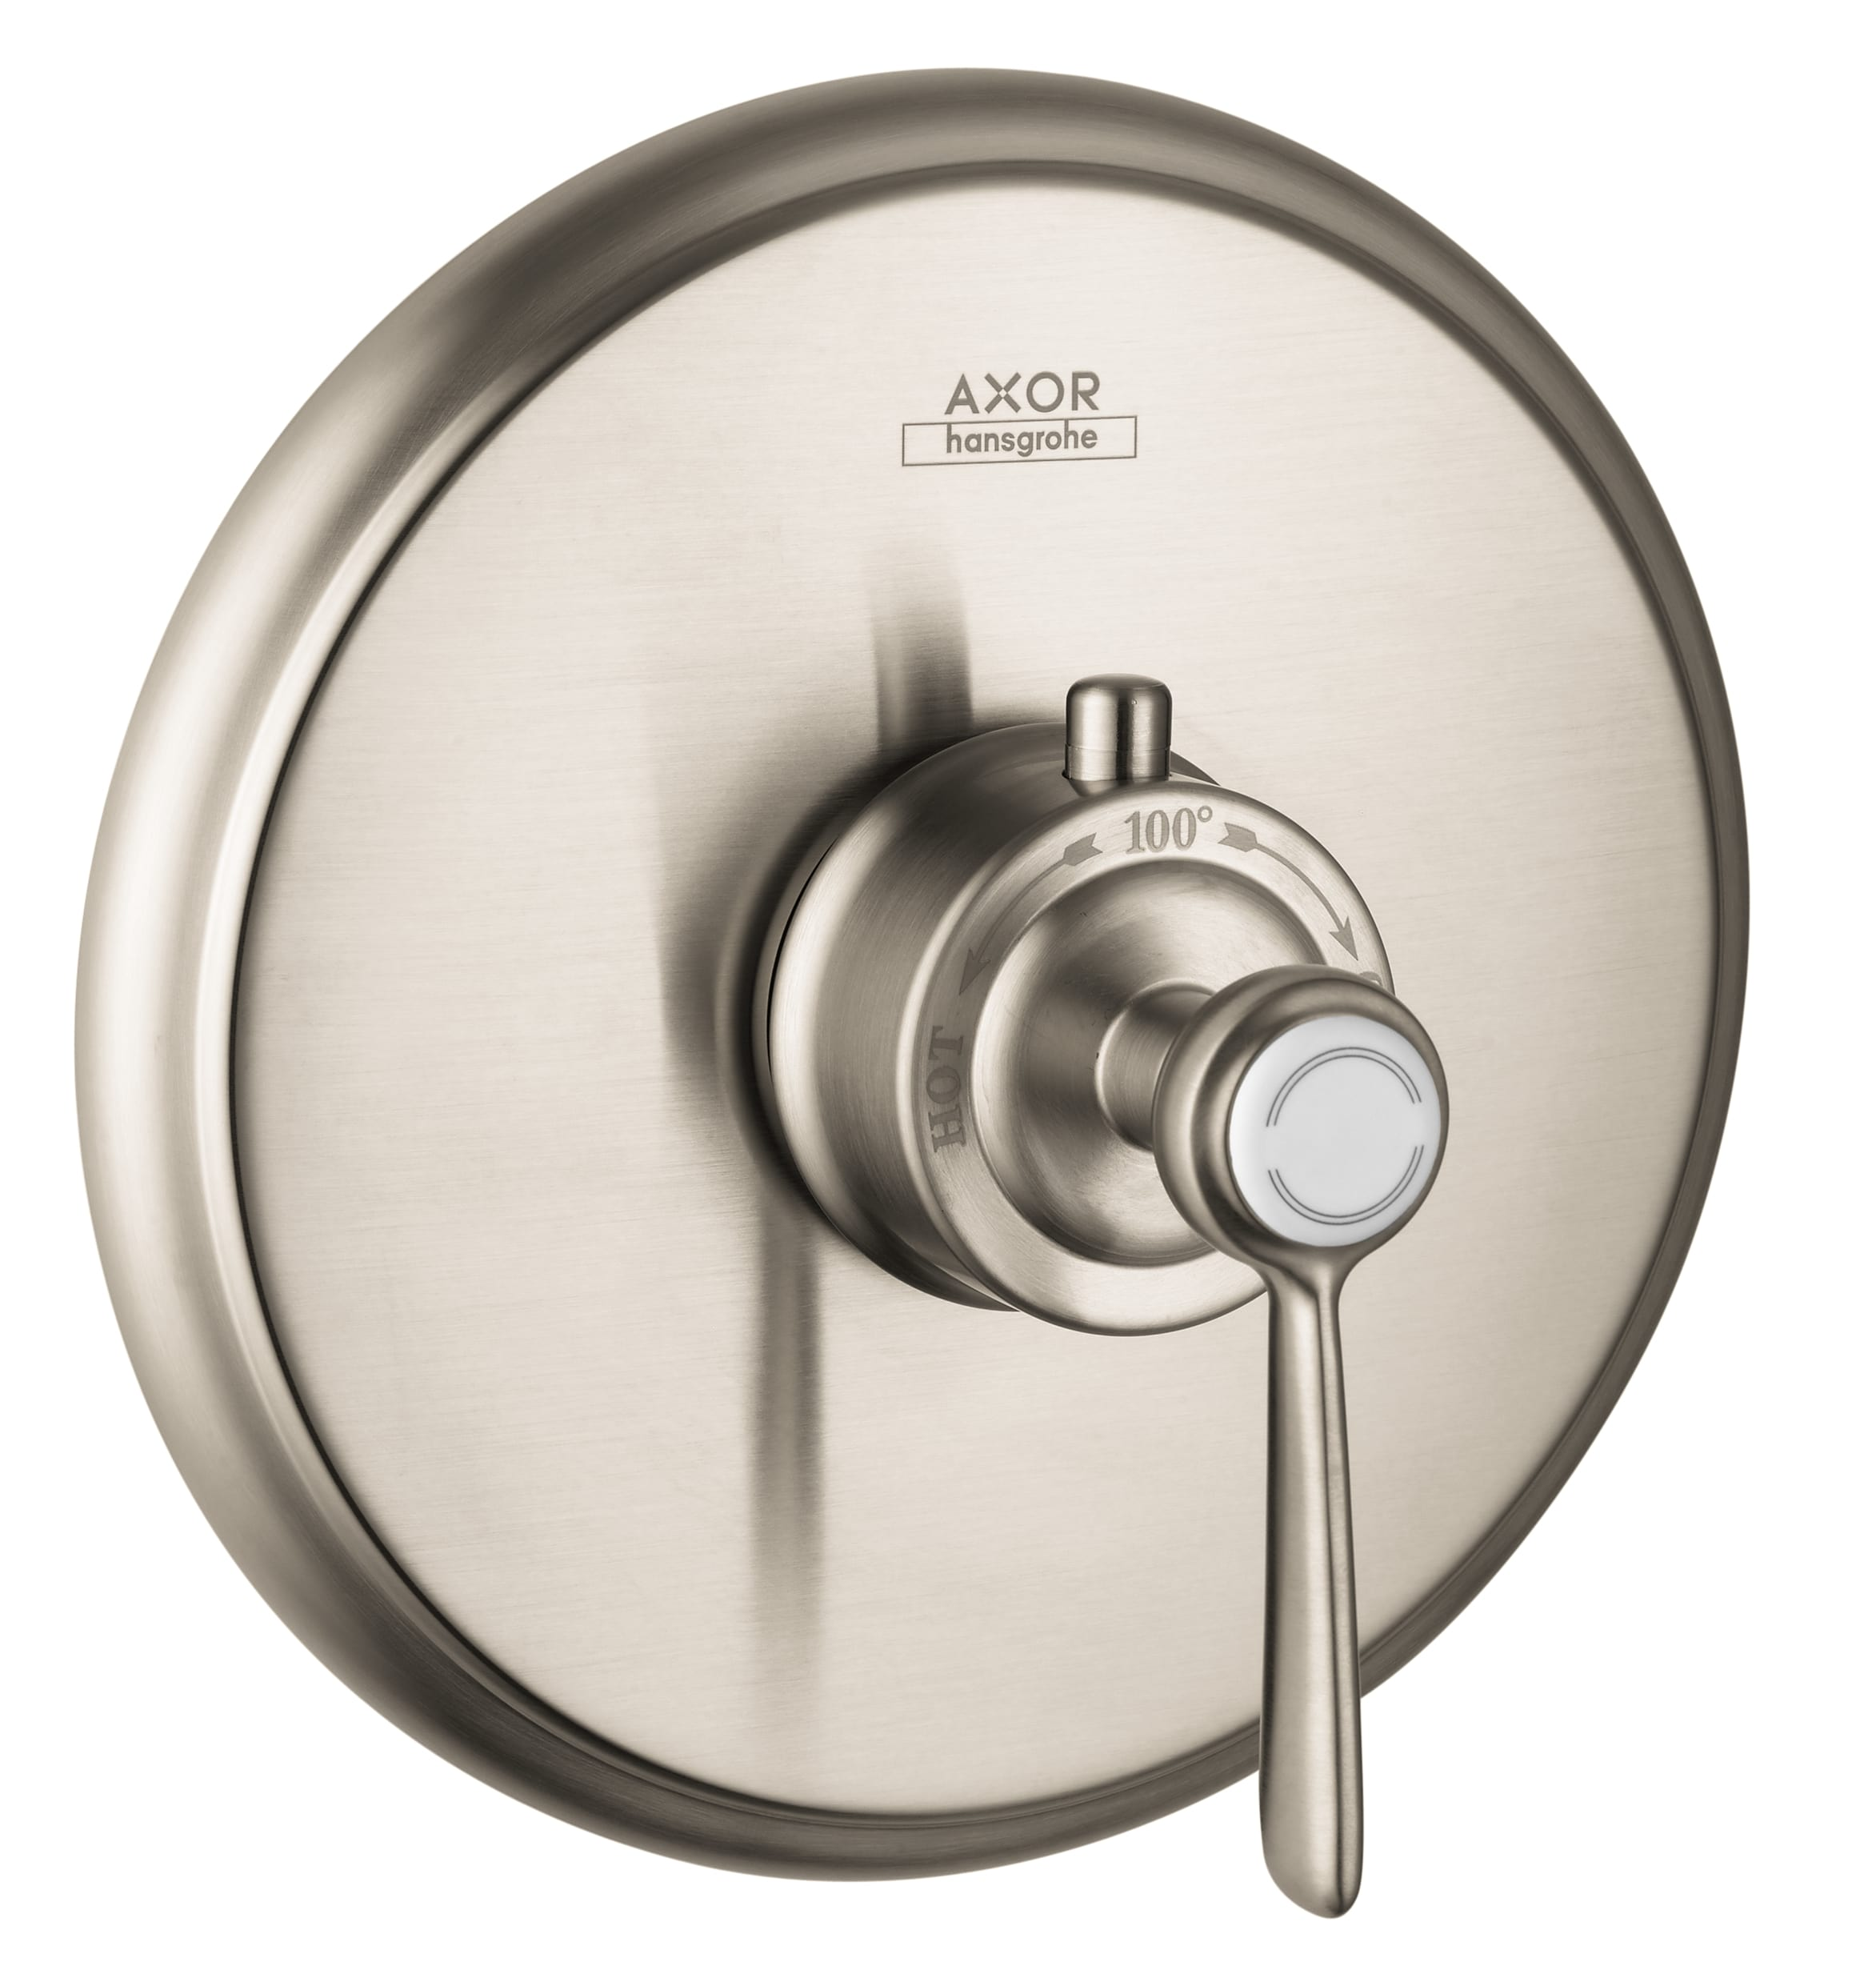 Axor 16824821 Brushed Nickel Montreux Thermostatic Valve Trim Less ...